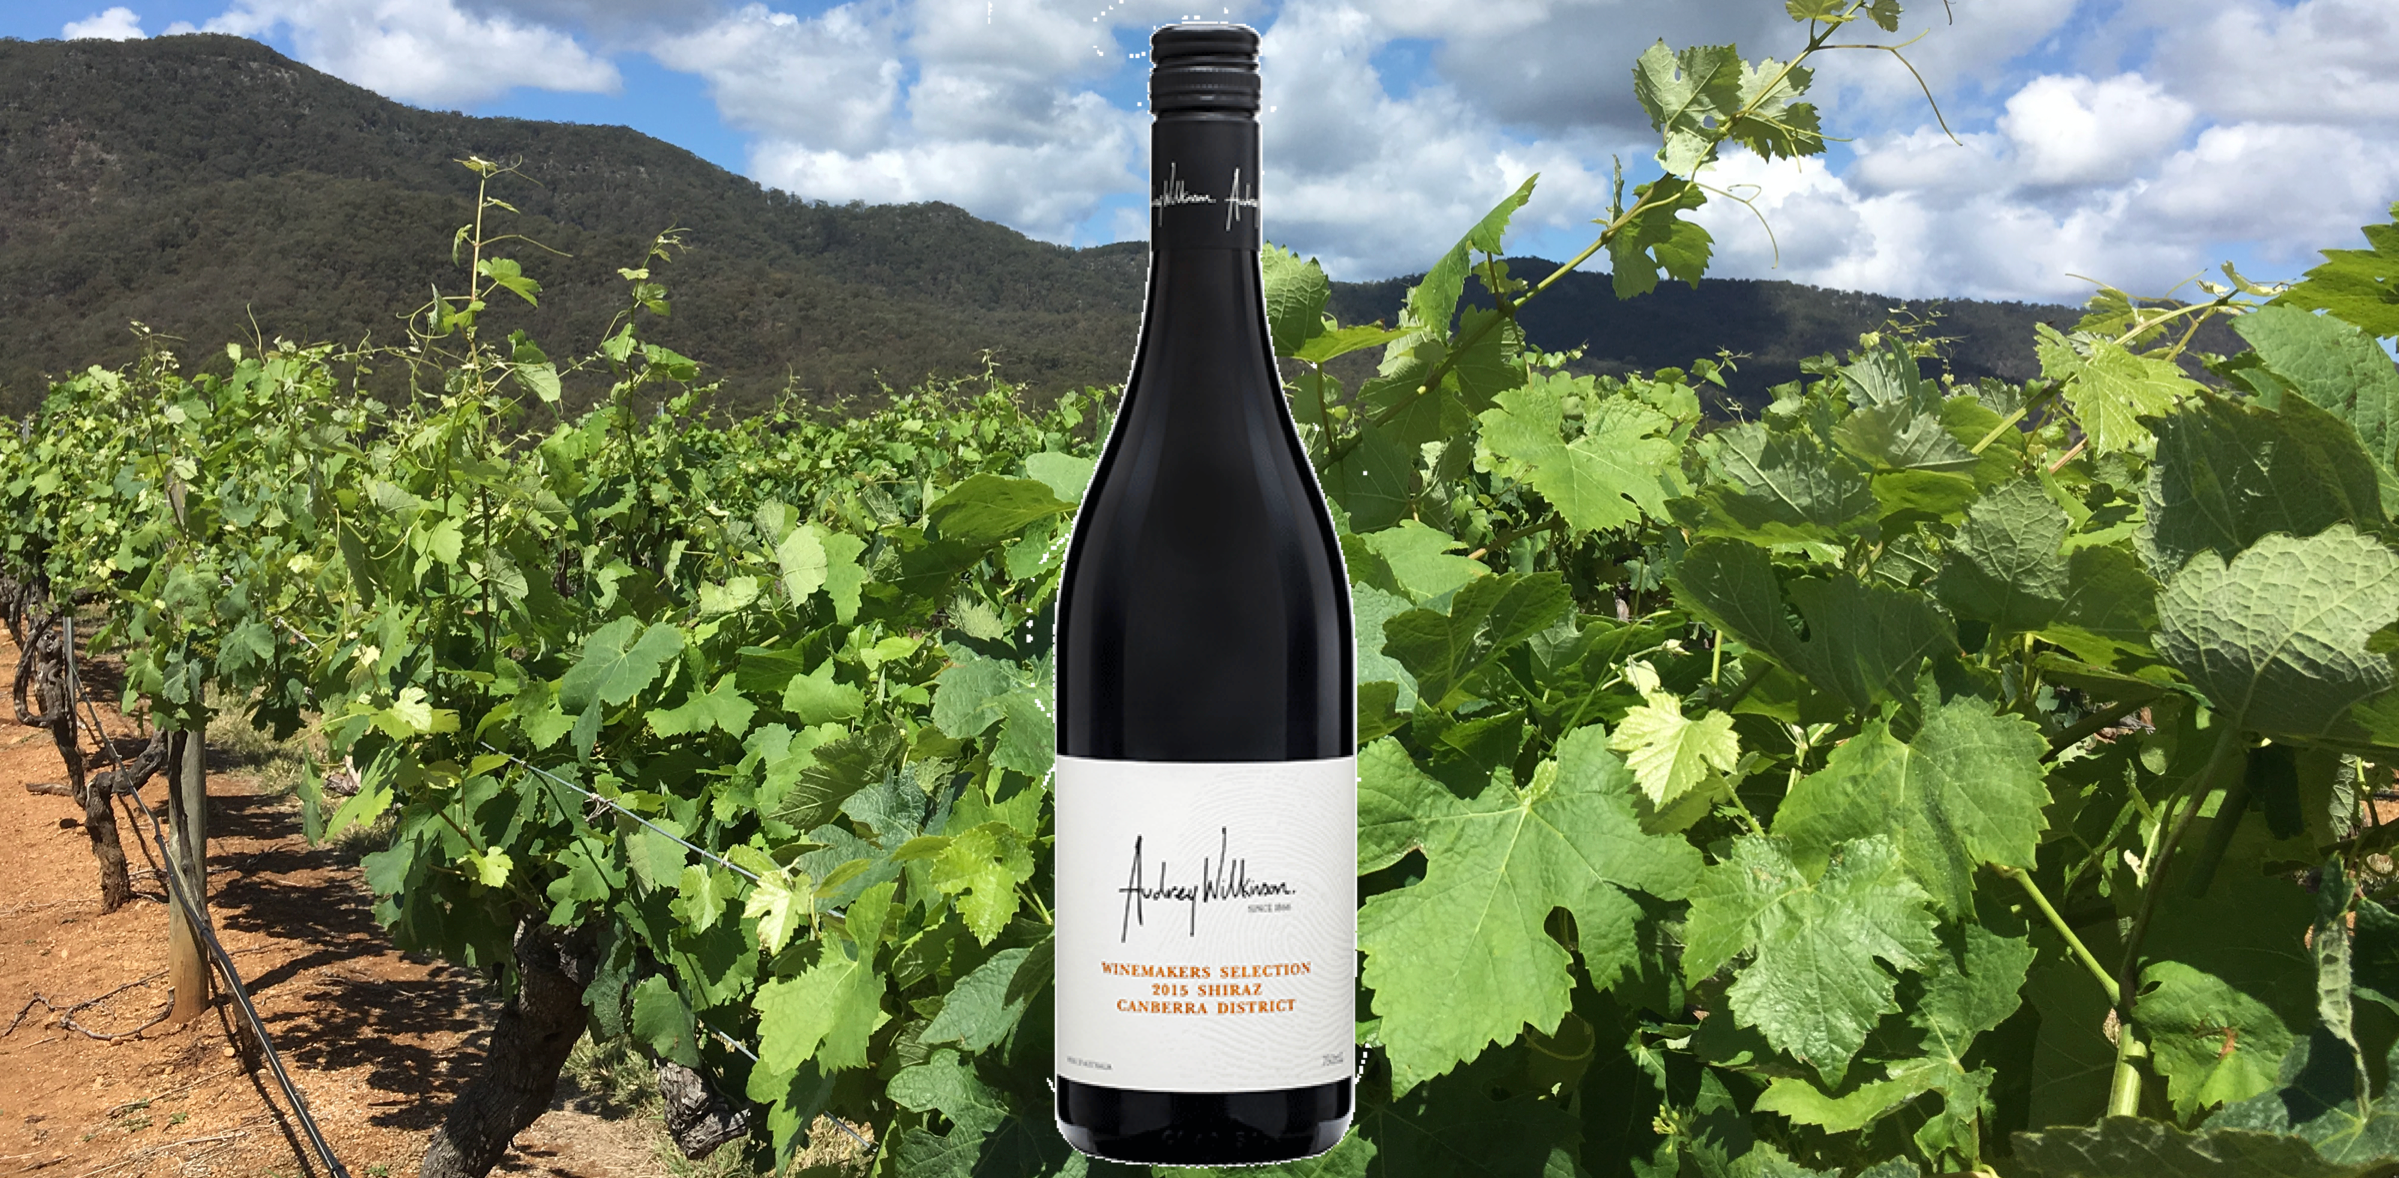 Audrey Wilkinson Winemakers Selection Shiraz